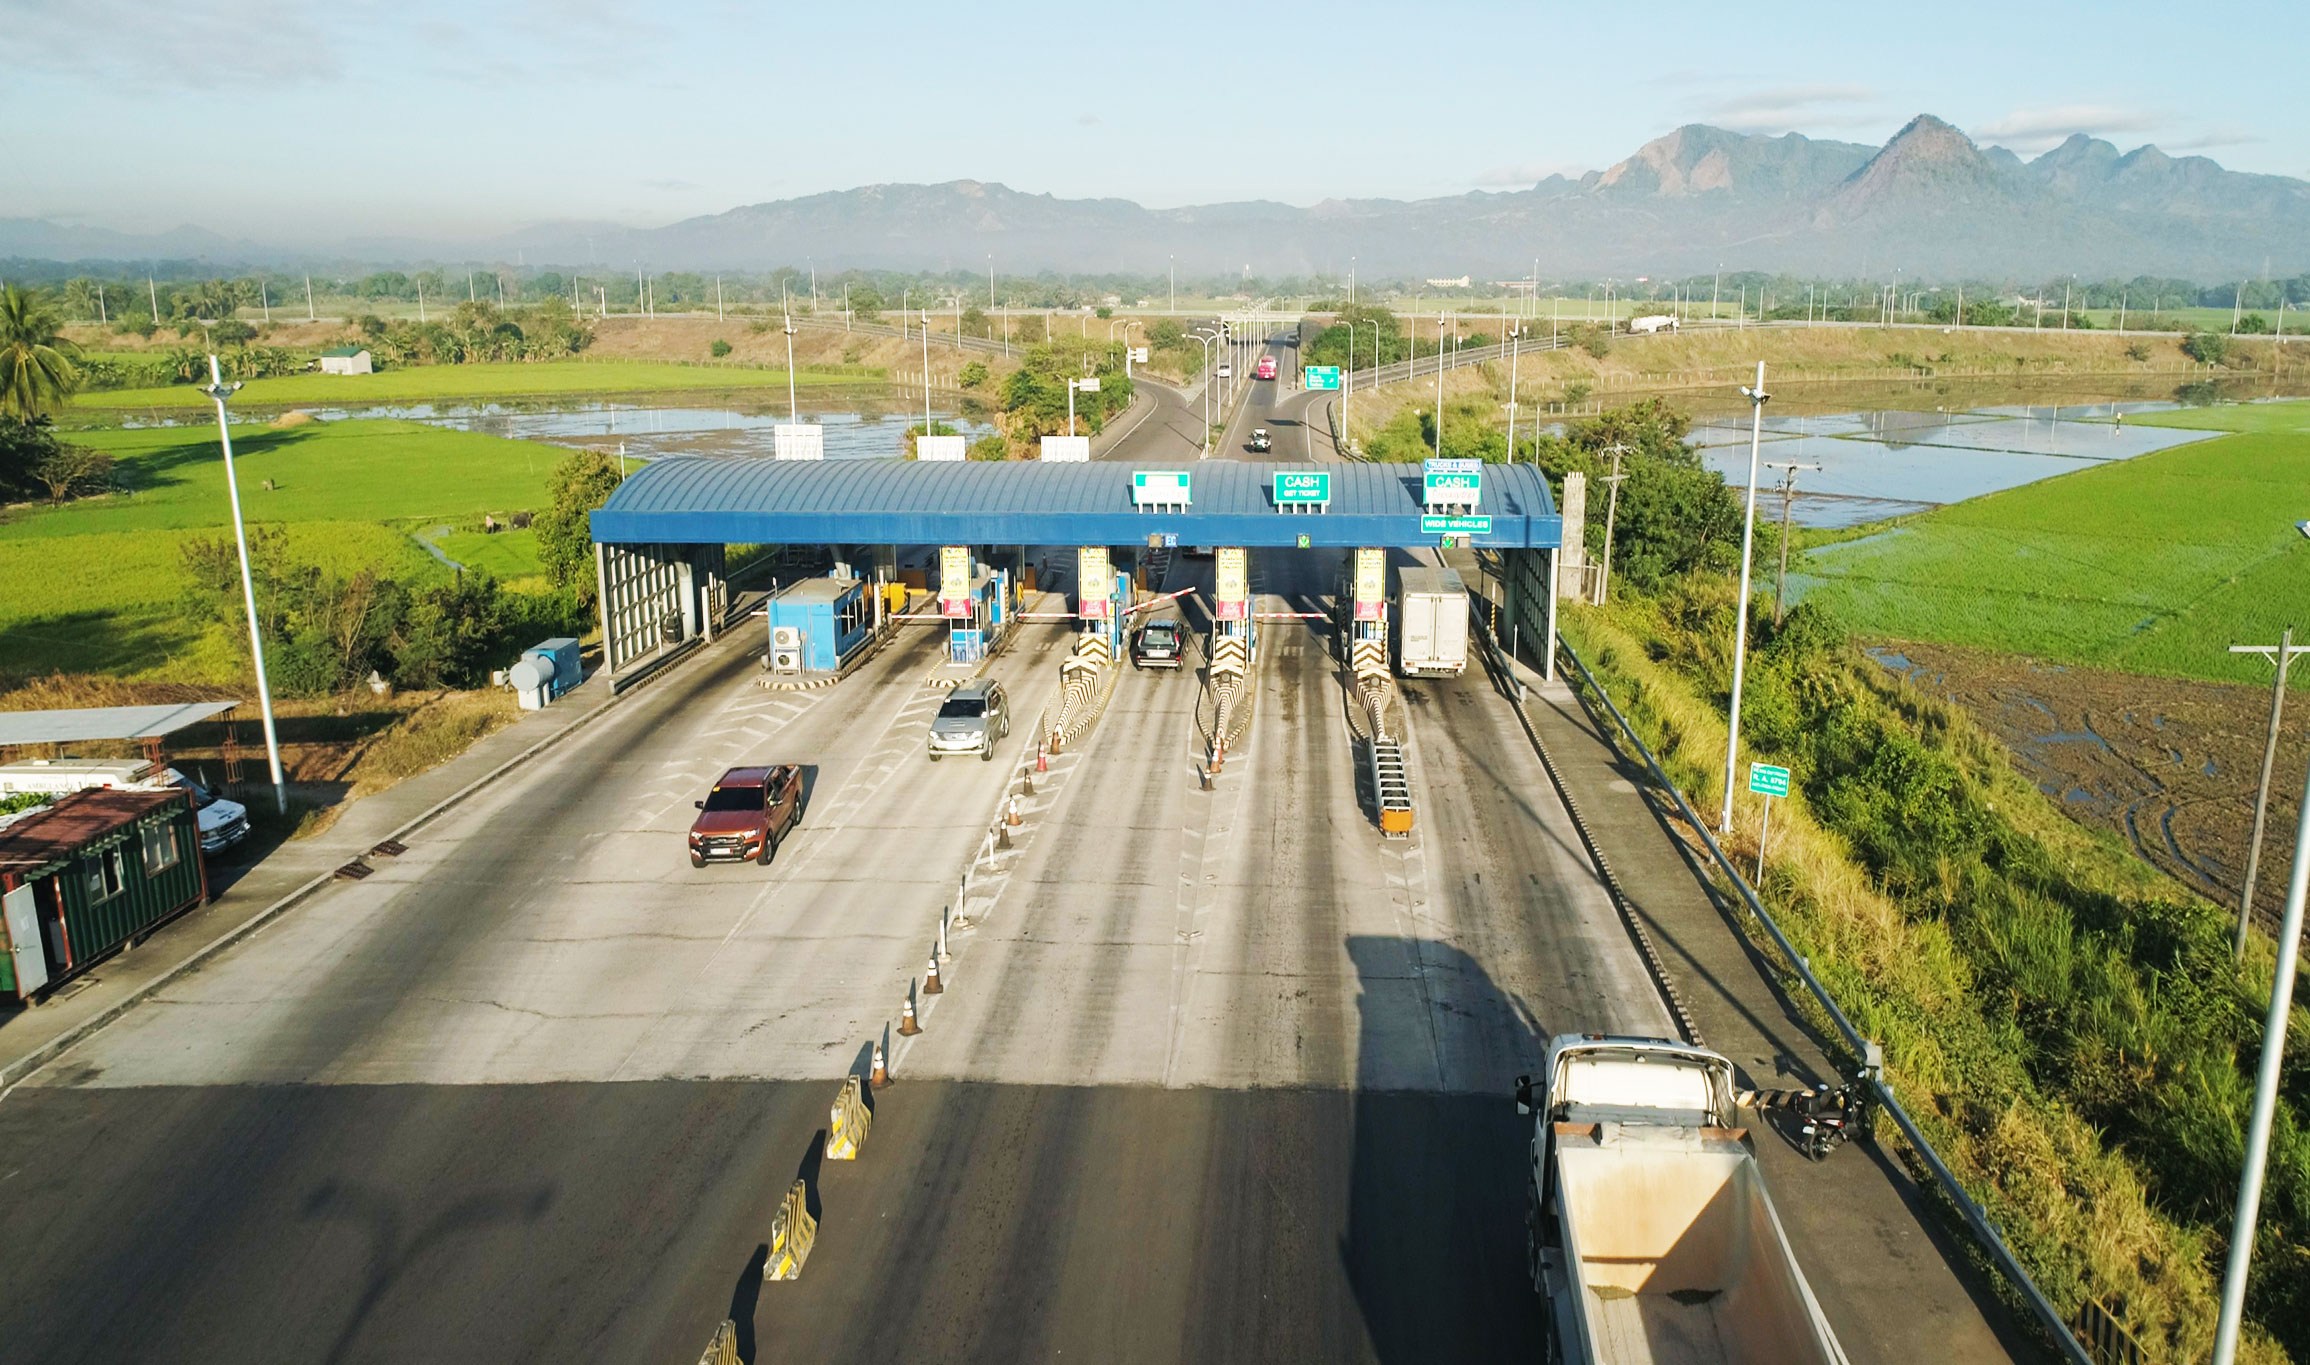 Toll gates in an expressway going to Manila